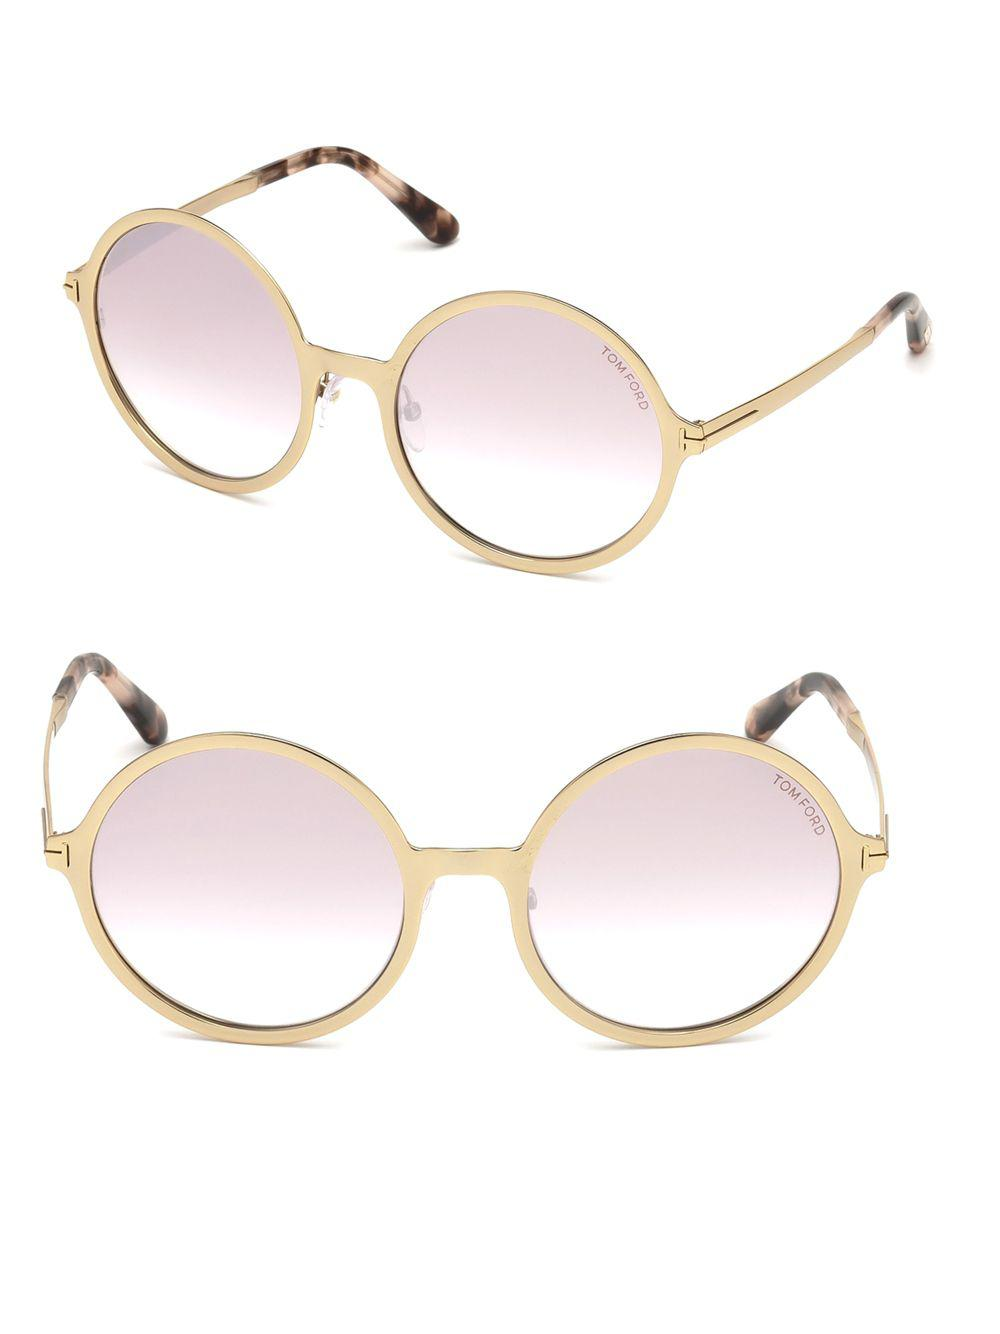 58af45a7cd700 Lyst - Tom Ford Ava Round Sunglasses in Purple